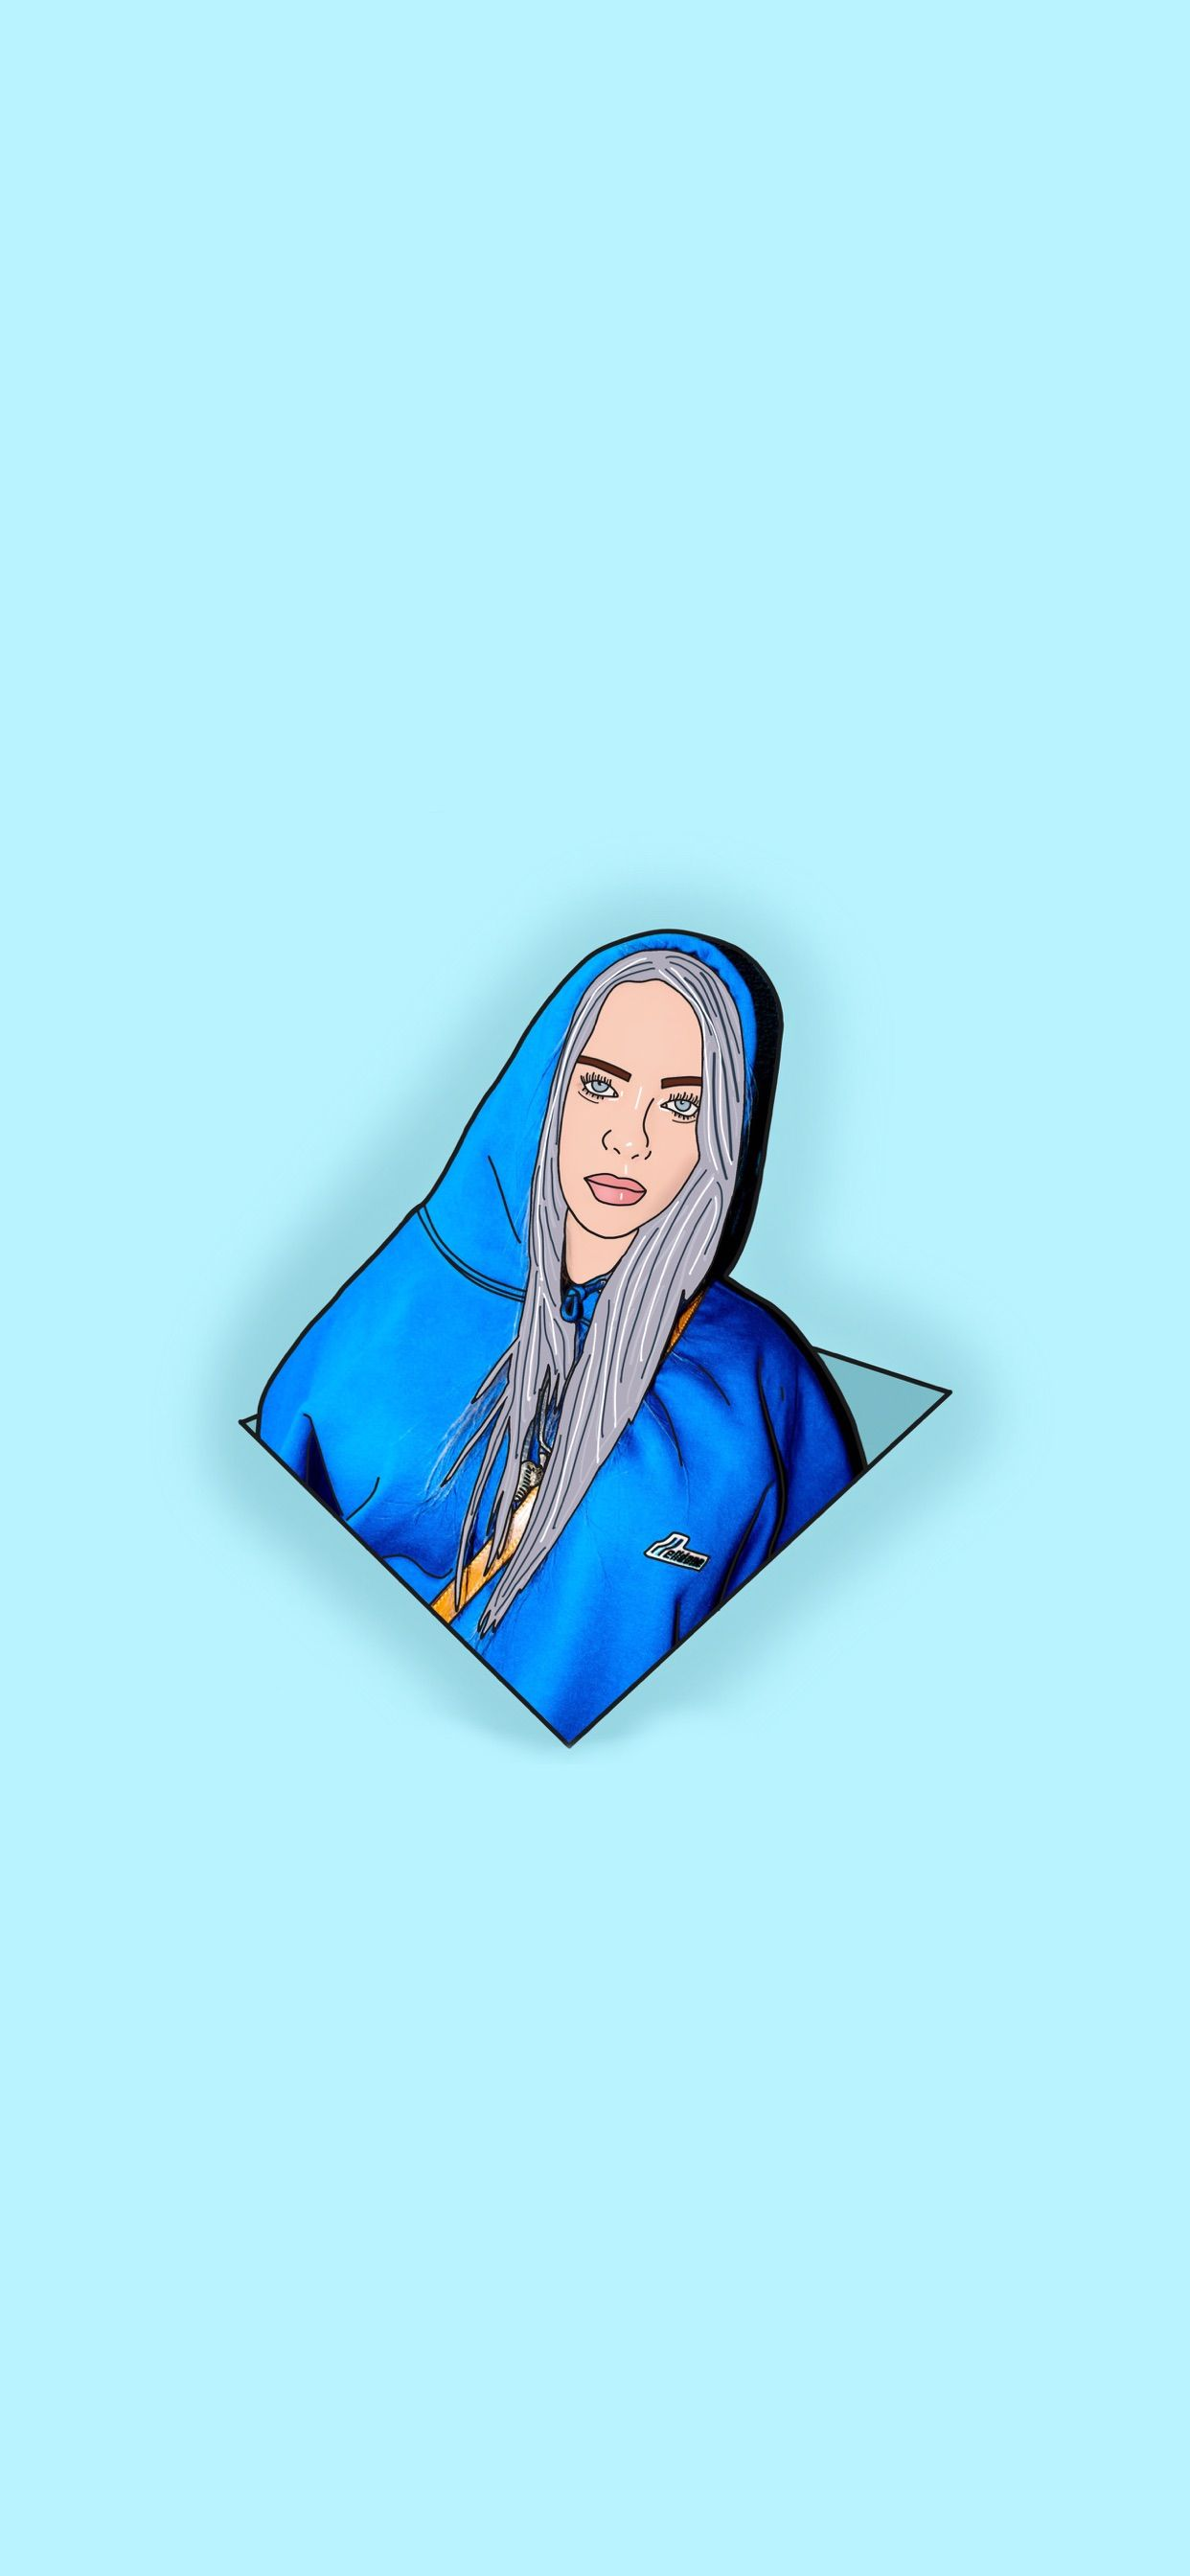 Billie Eilish Wallpaper Billie Eilish Wallpaper Billie